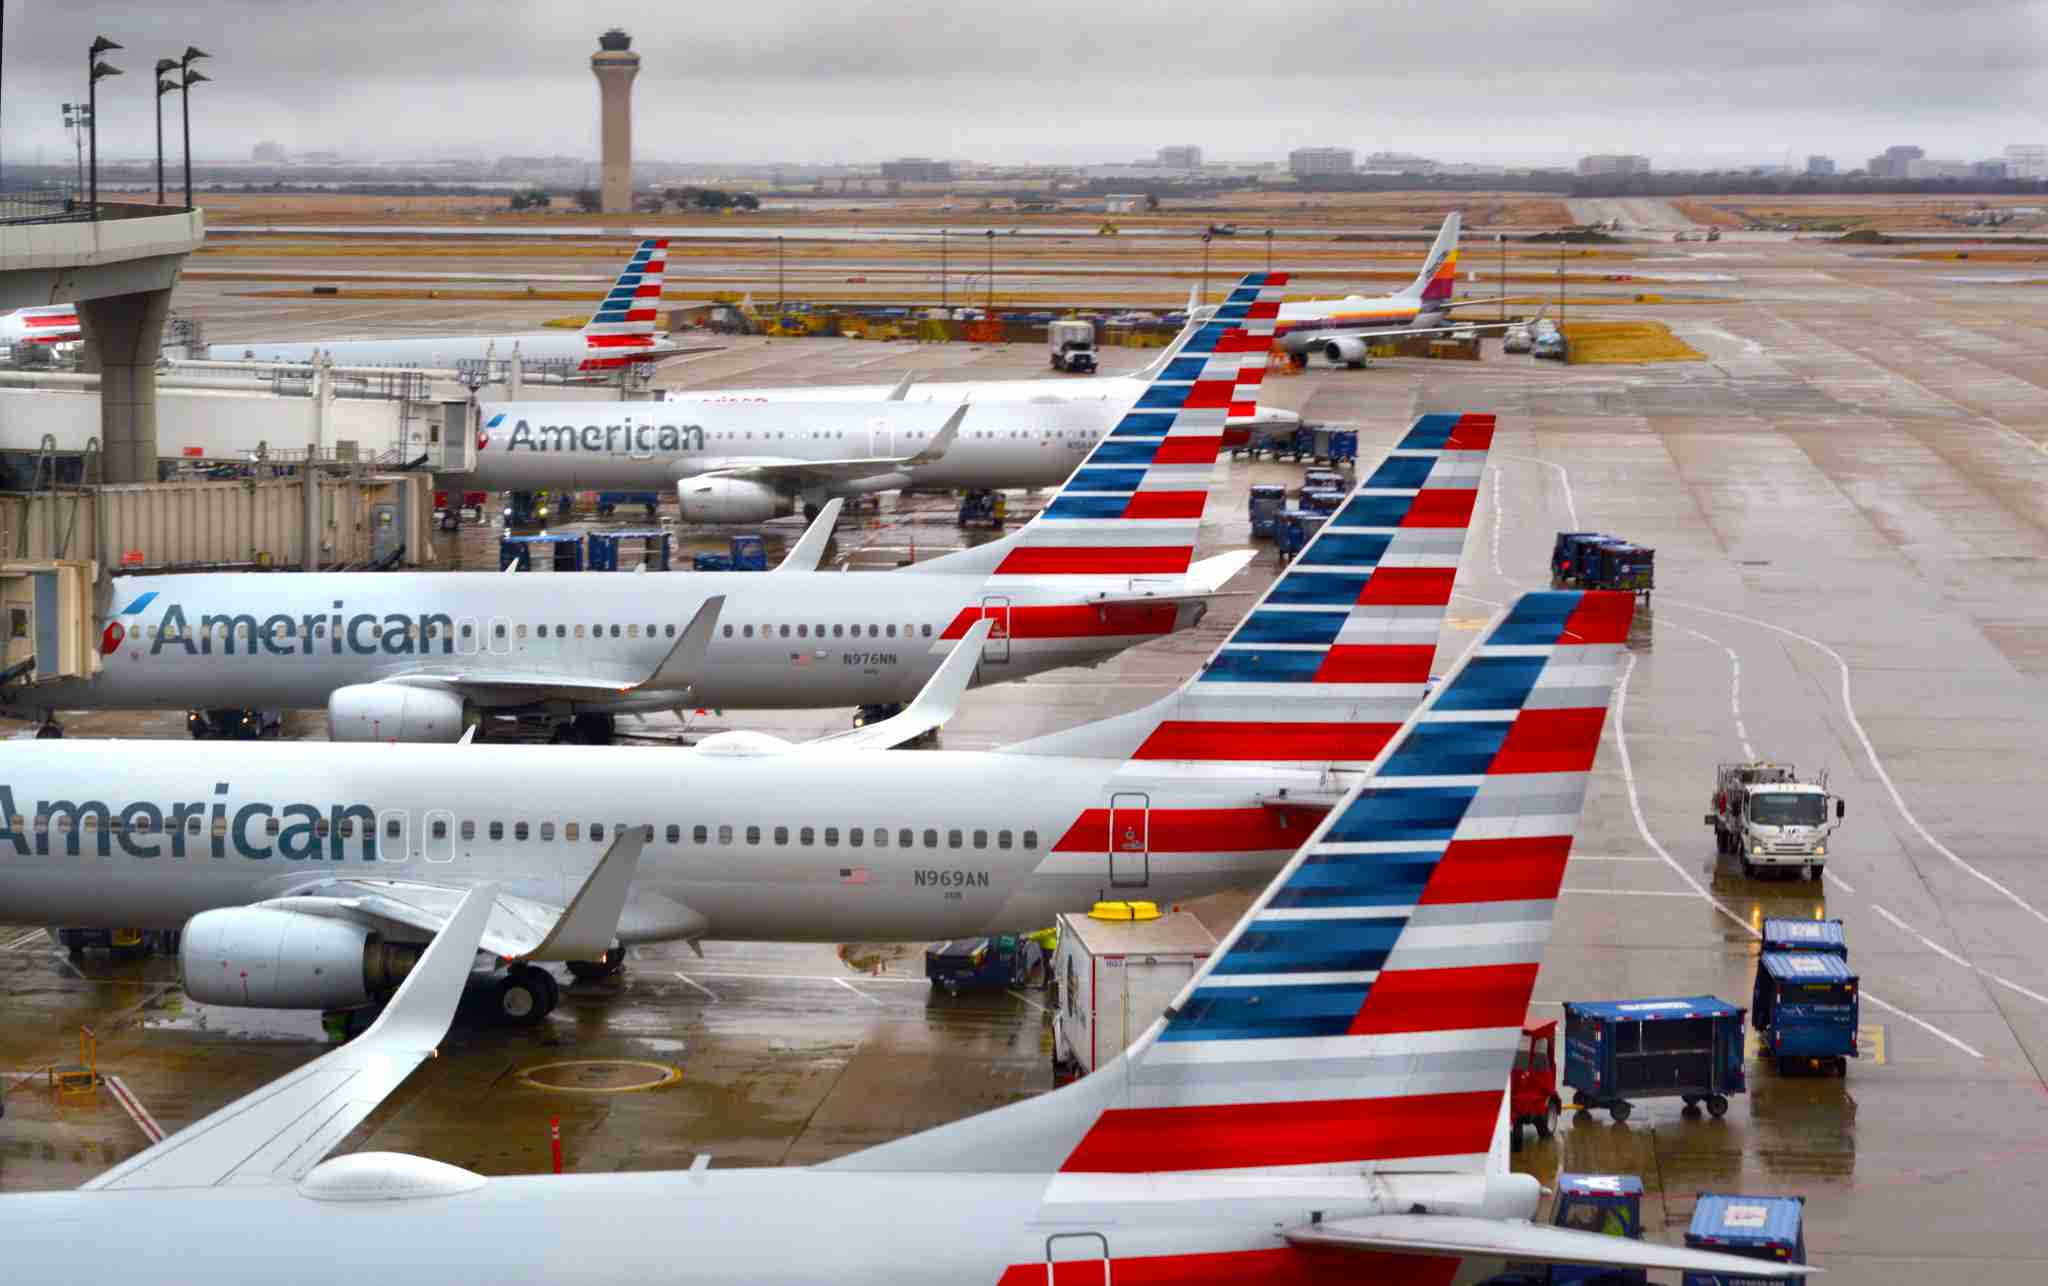 American Airlines passenger jets parked at their gates on a rainy morning at Dallas/Fort Worth International Airport. (Photo by Robert Alexander/Getty Images)